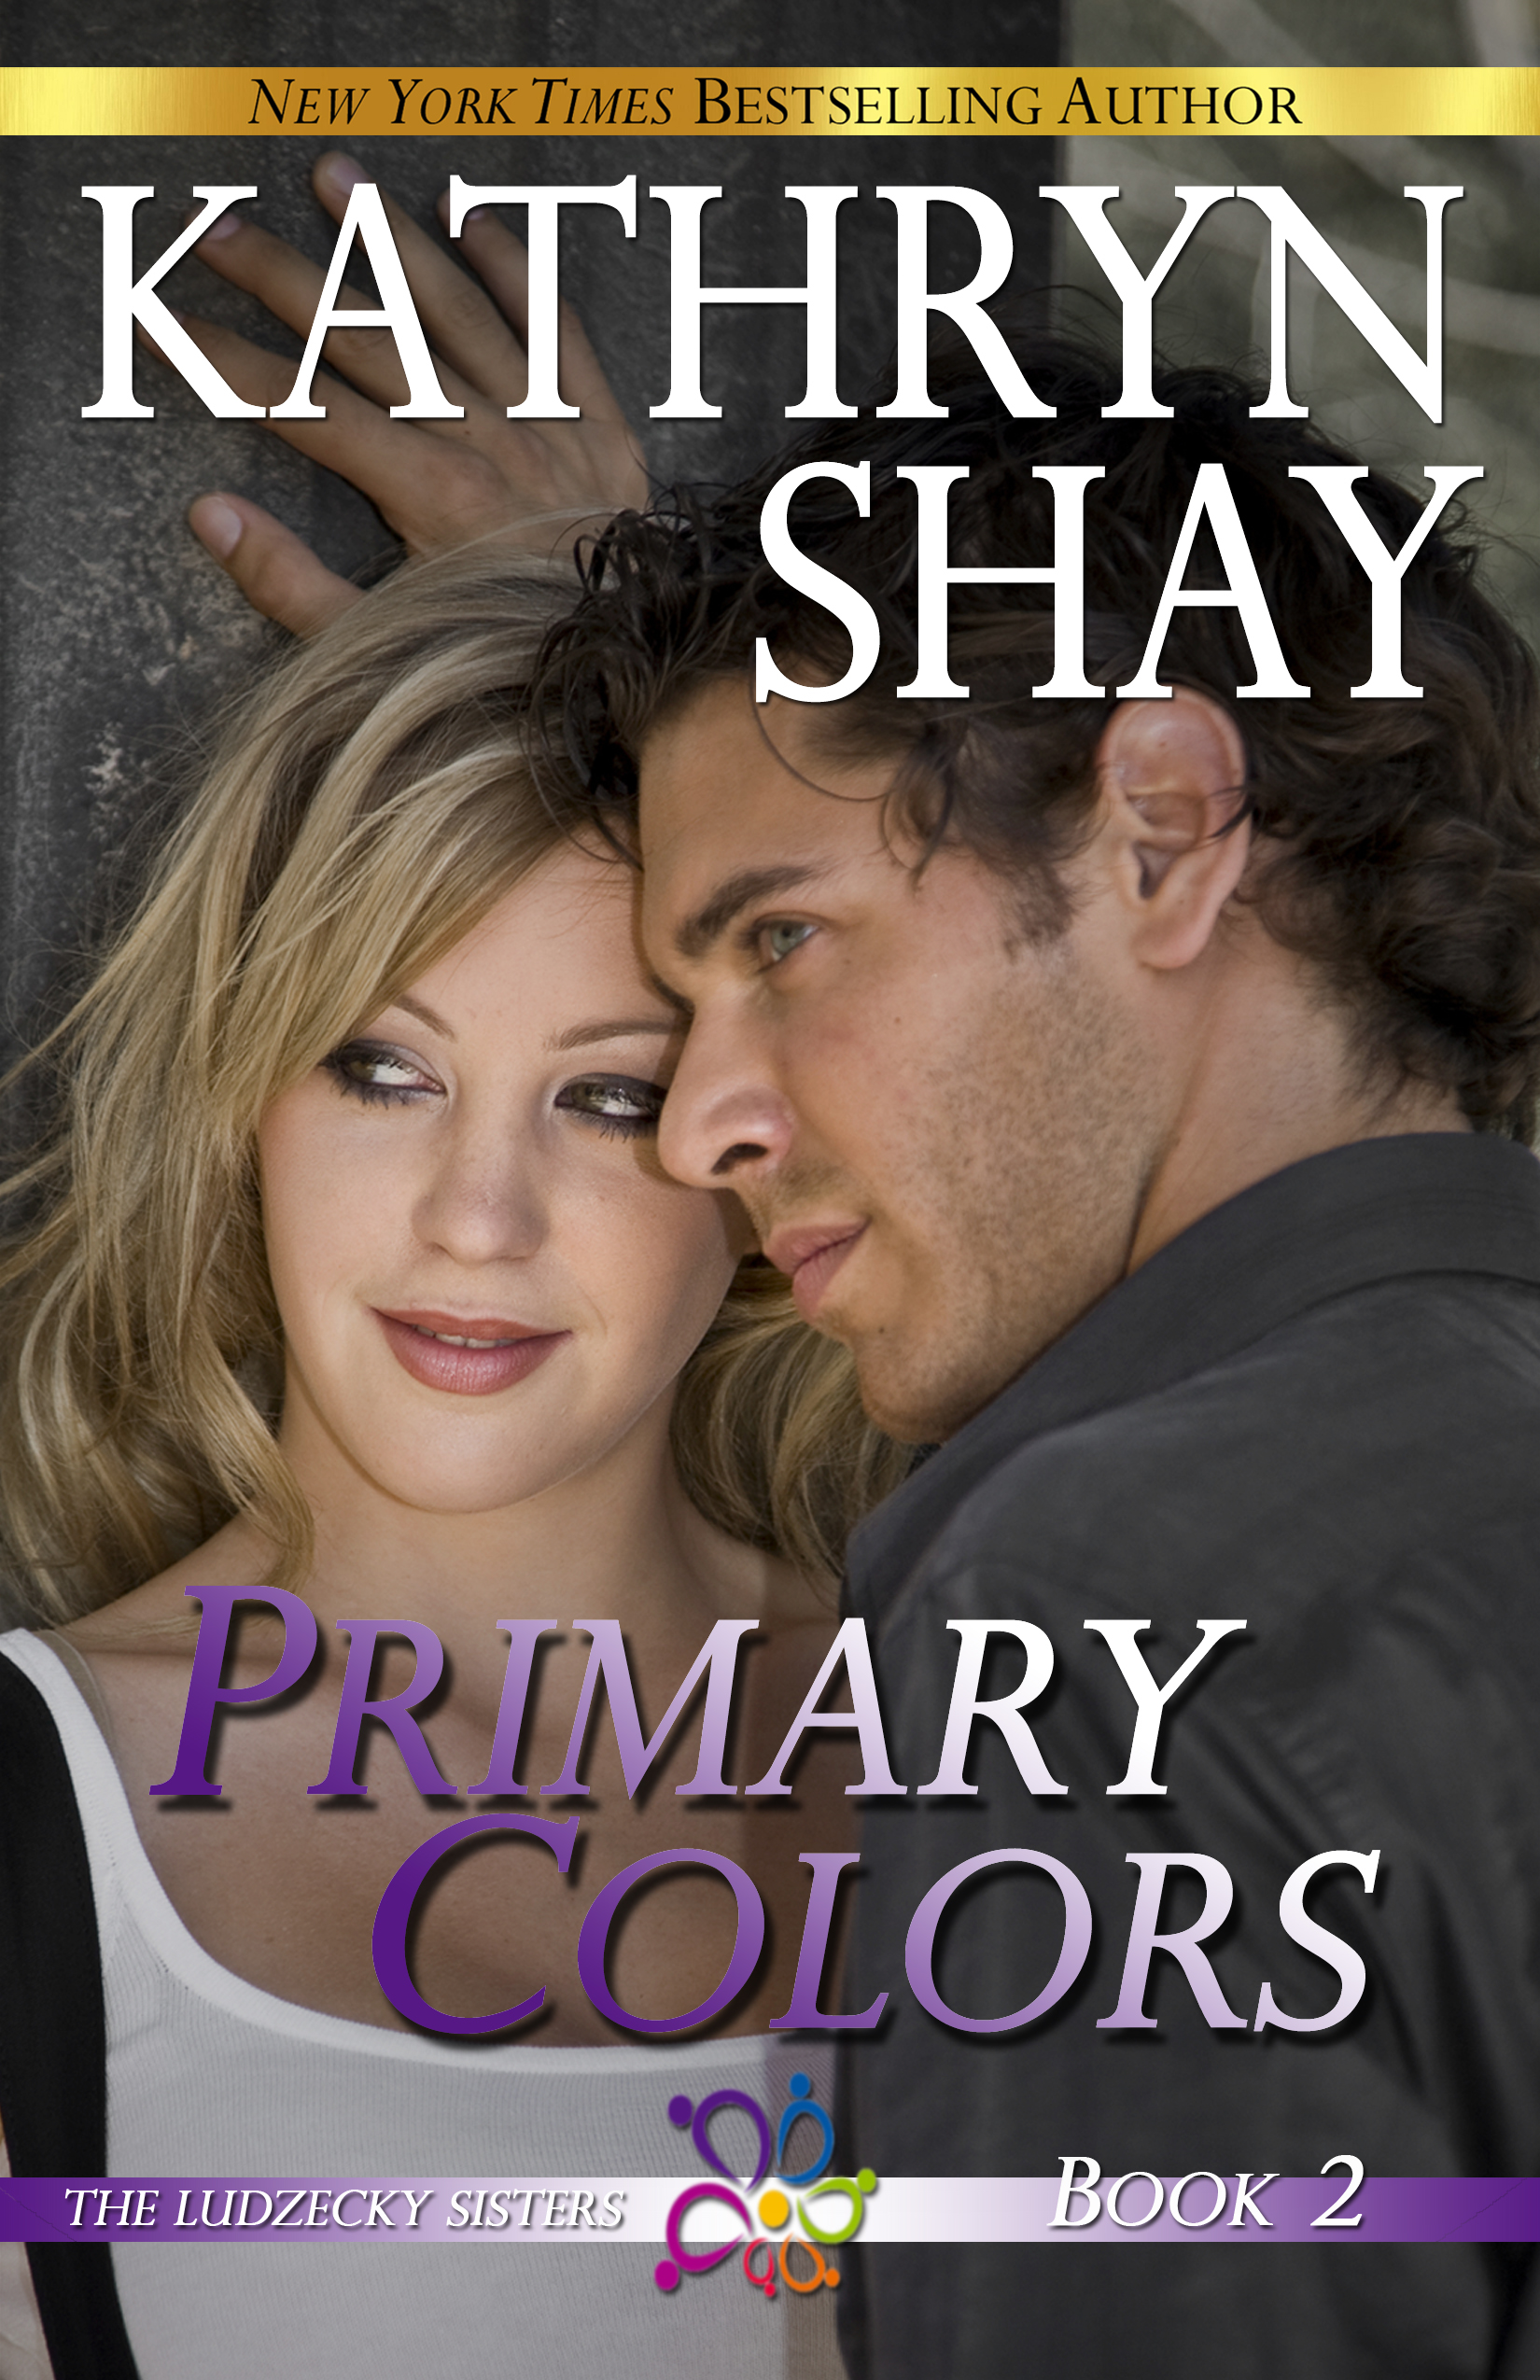 primary colors - Primary Colors Book